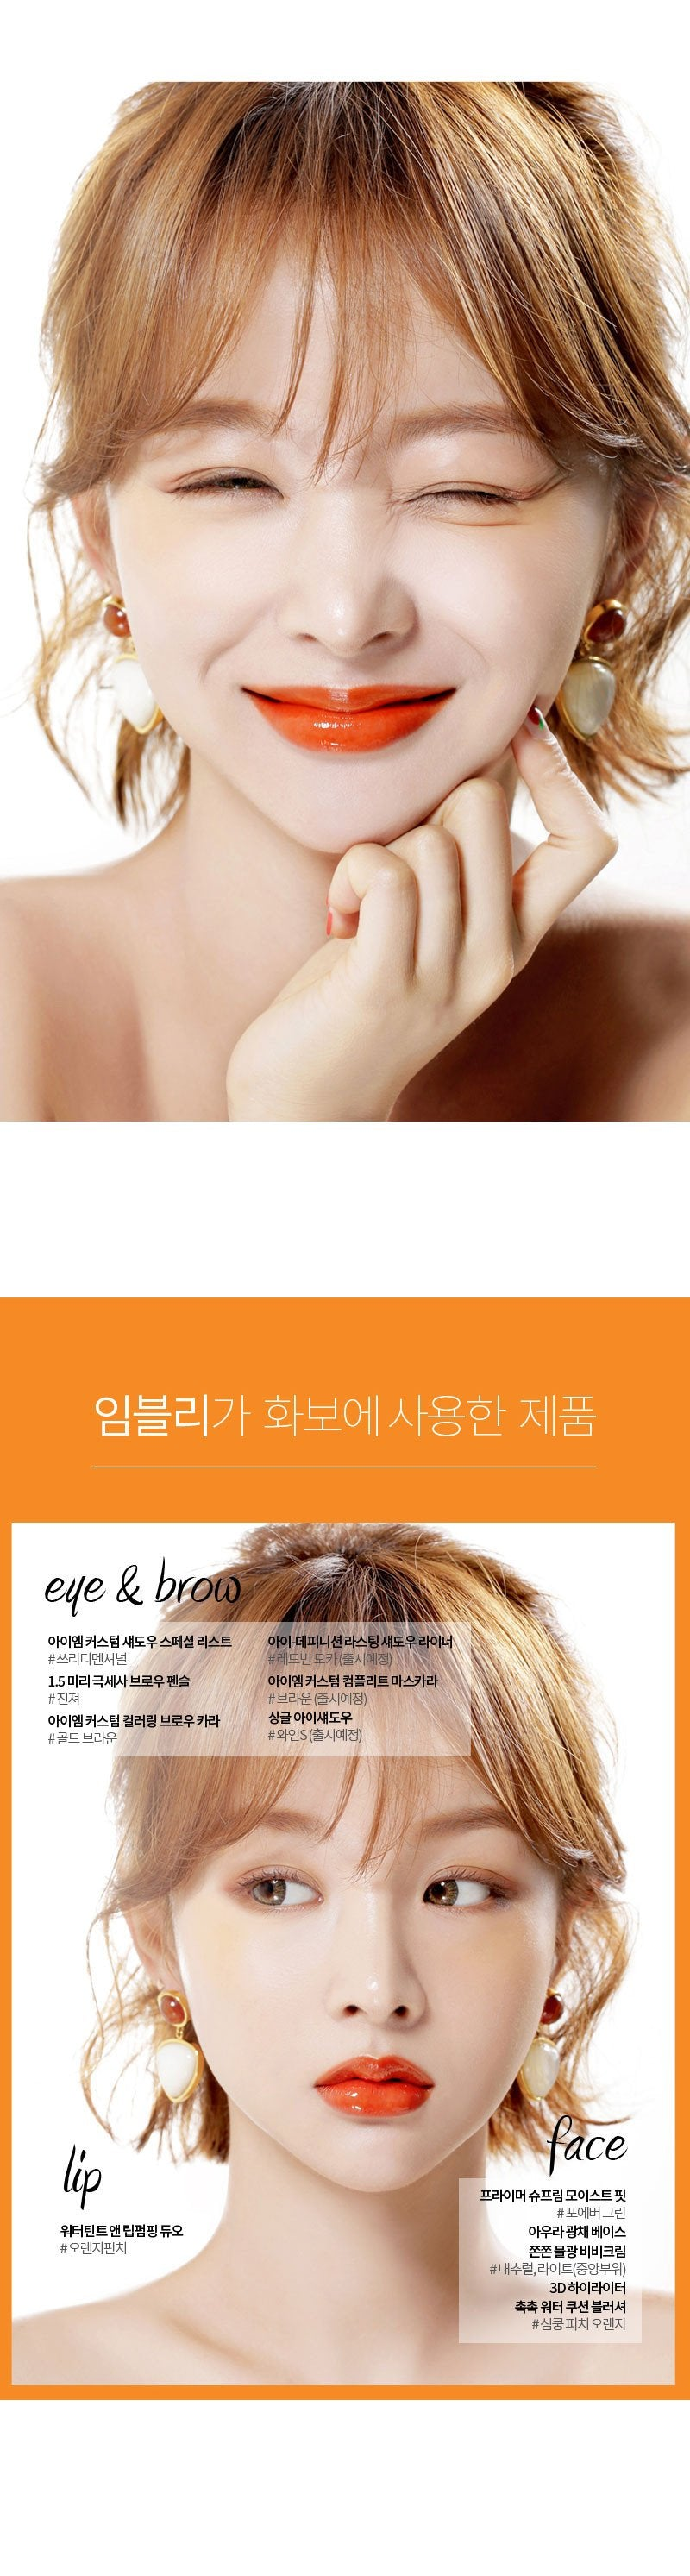 Korea's Cosmetic Brand, Vely Vely Water Tint Lip Plumping Duo in Orange Punch